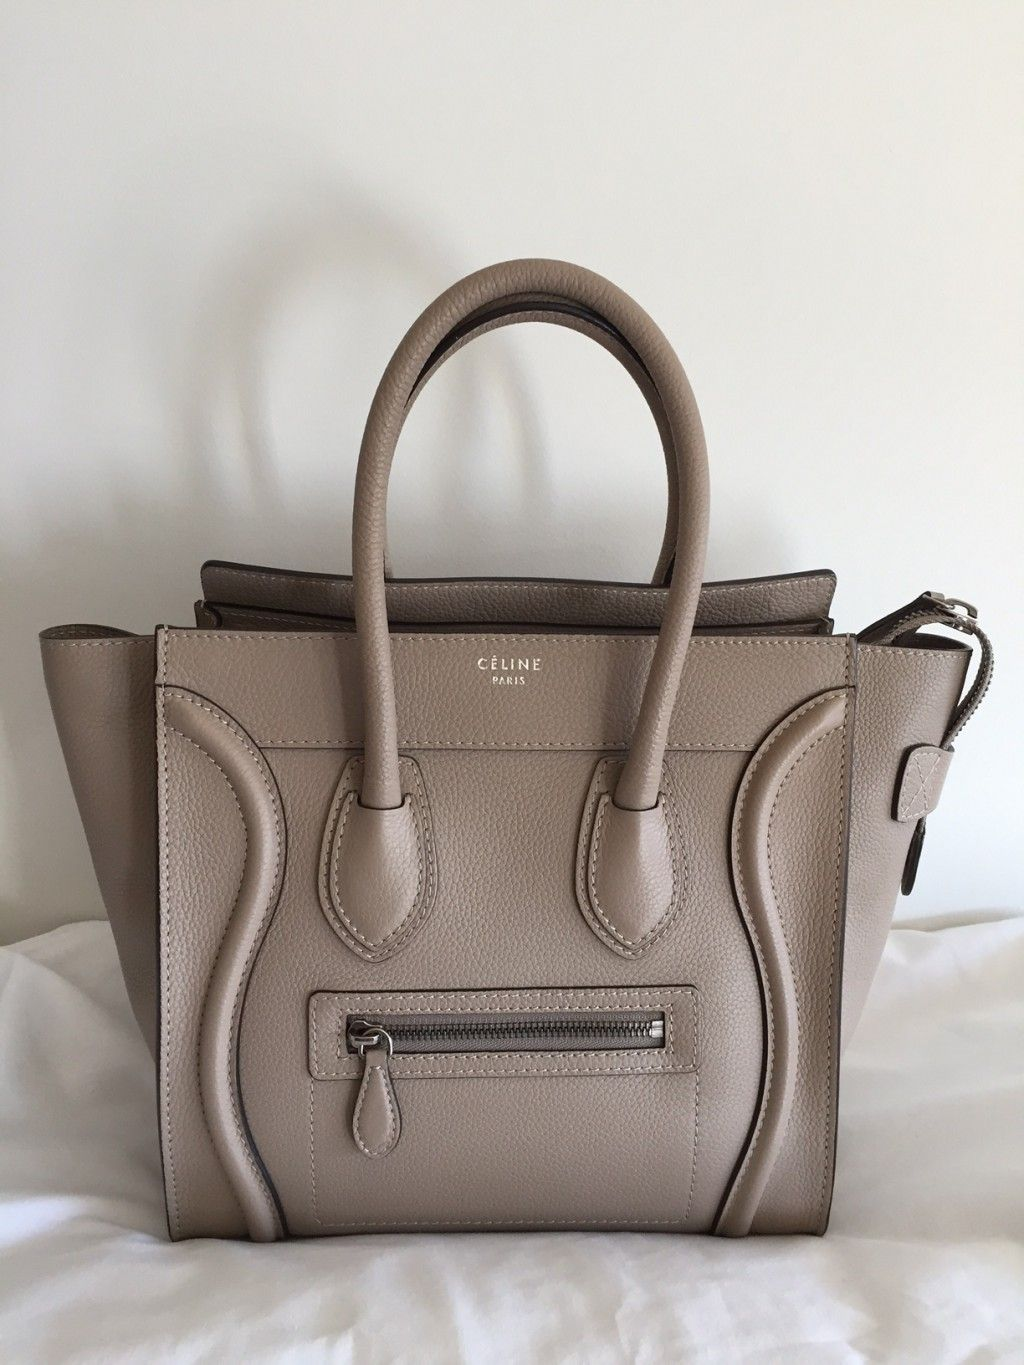 The purse design that put Phoebe Philo and Celine back on the fashion  scene. Celine Dune Micro Luggage ... 30e100f19972b